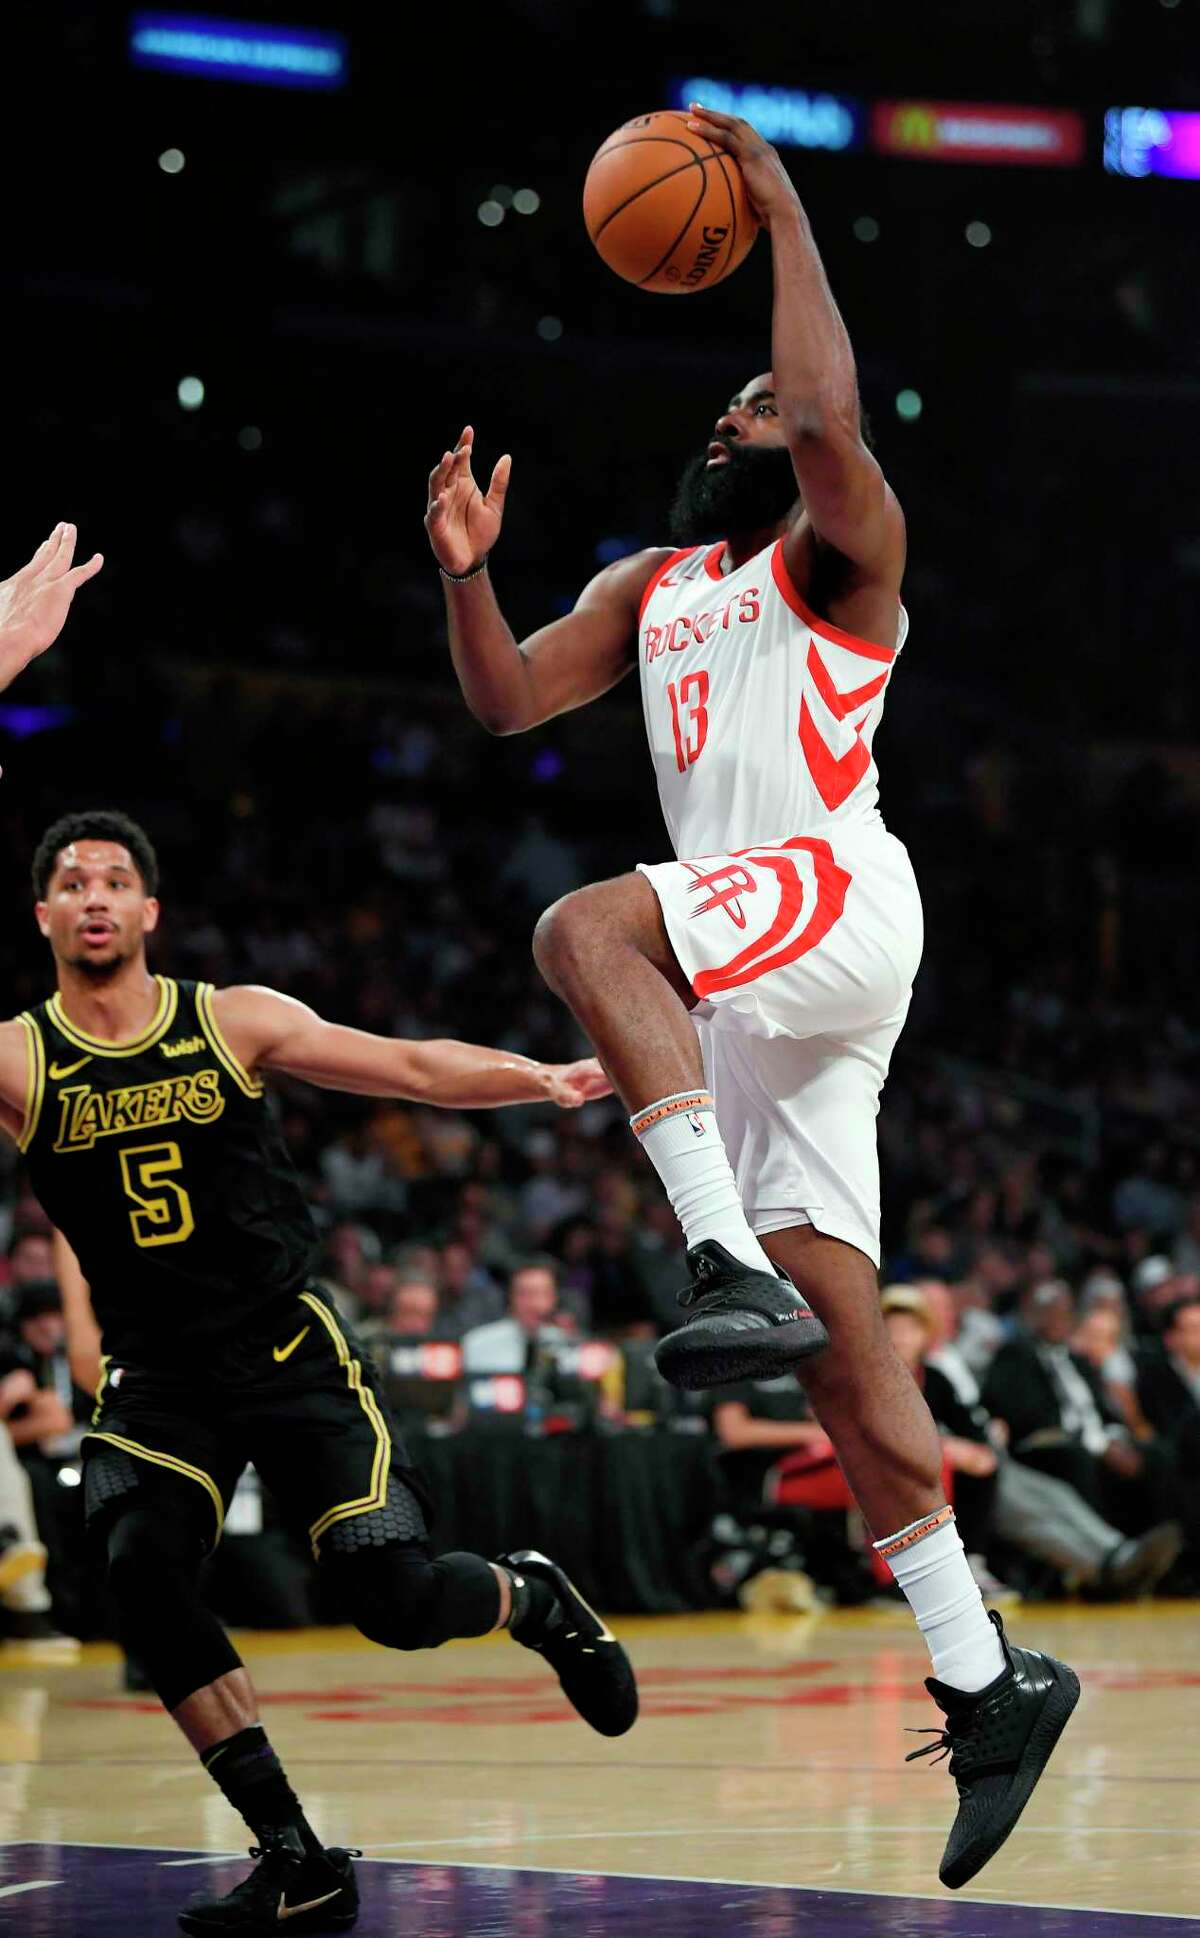 Houston Rockets guard James Harden, right, shoots as Los Angeles Lakers guard Josh Hart defends during the first half of an NBA basketball game Tuesday, April 10, 2018, in Los Angeles. (AP Photo/Mark J. Terrill)